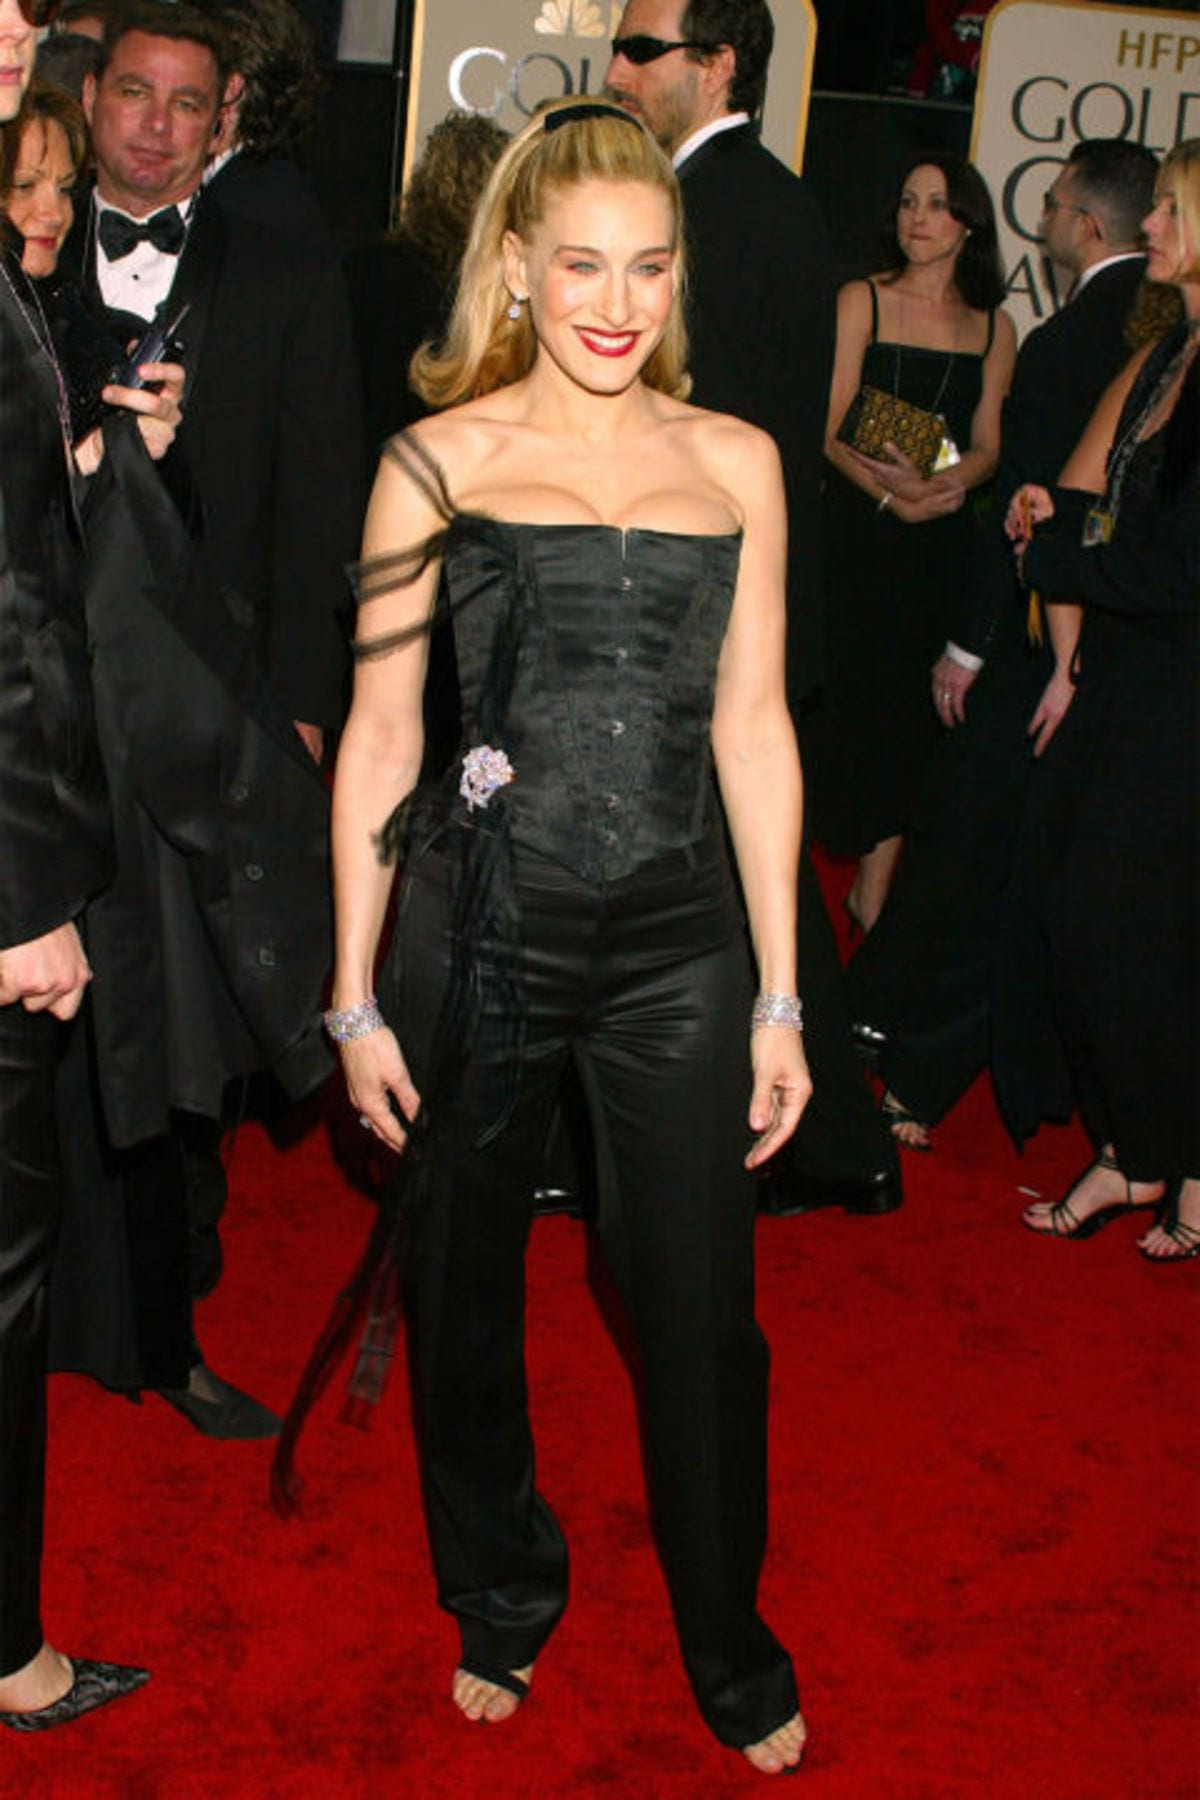 hbz-worst-gg-dresses-2003-gettyimages-104892888